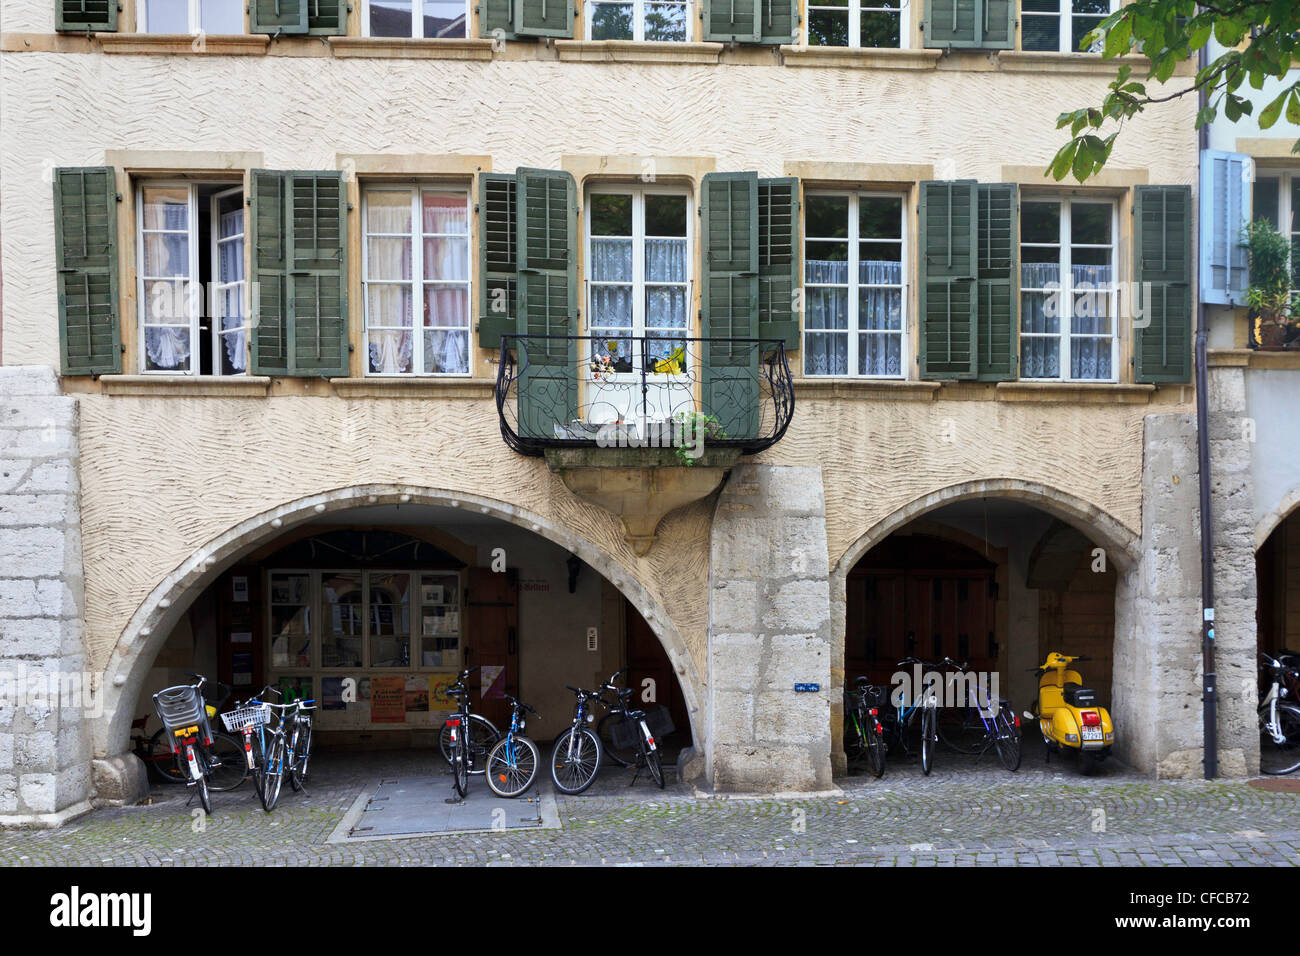 Arcade, Biel, Biel, canton Berne, Europe, Switzerland, old town - Stock Image